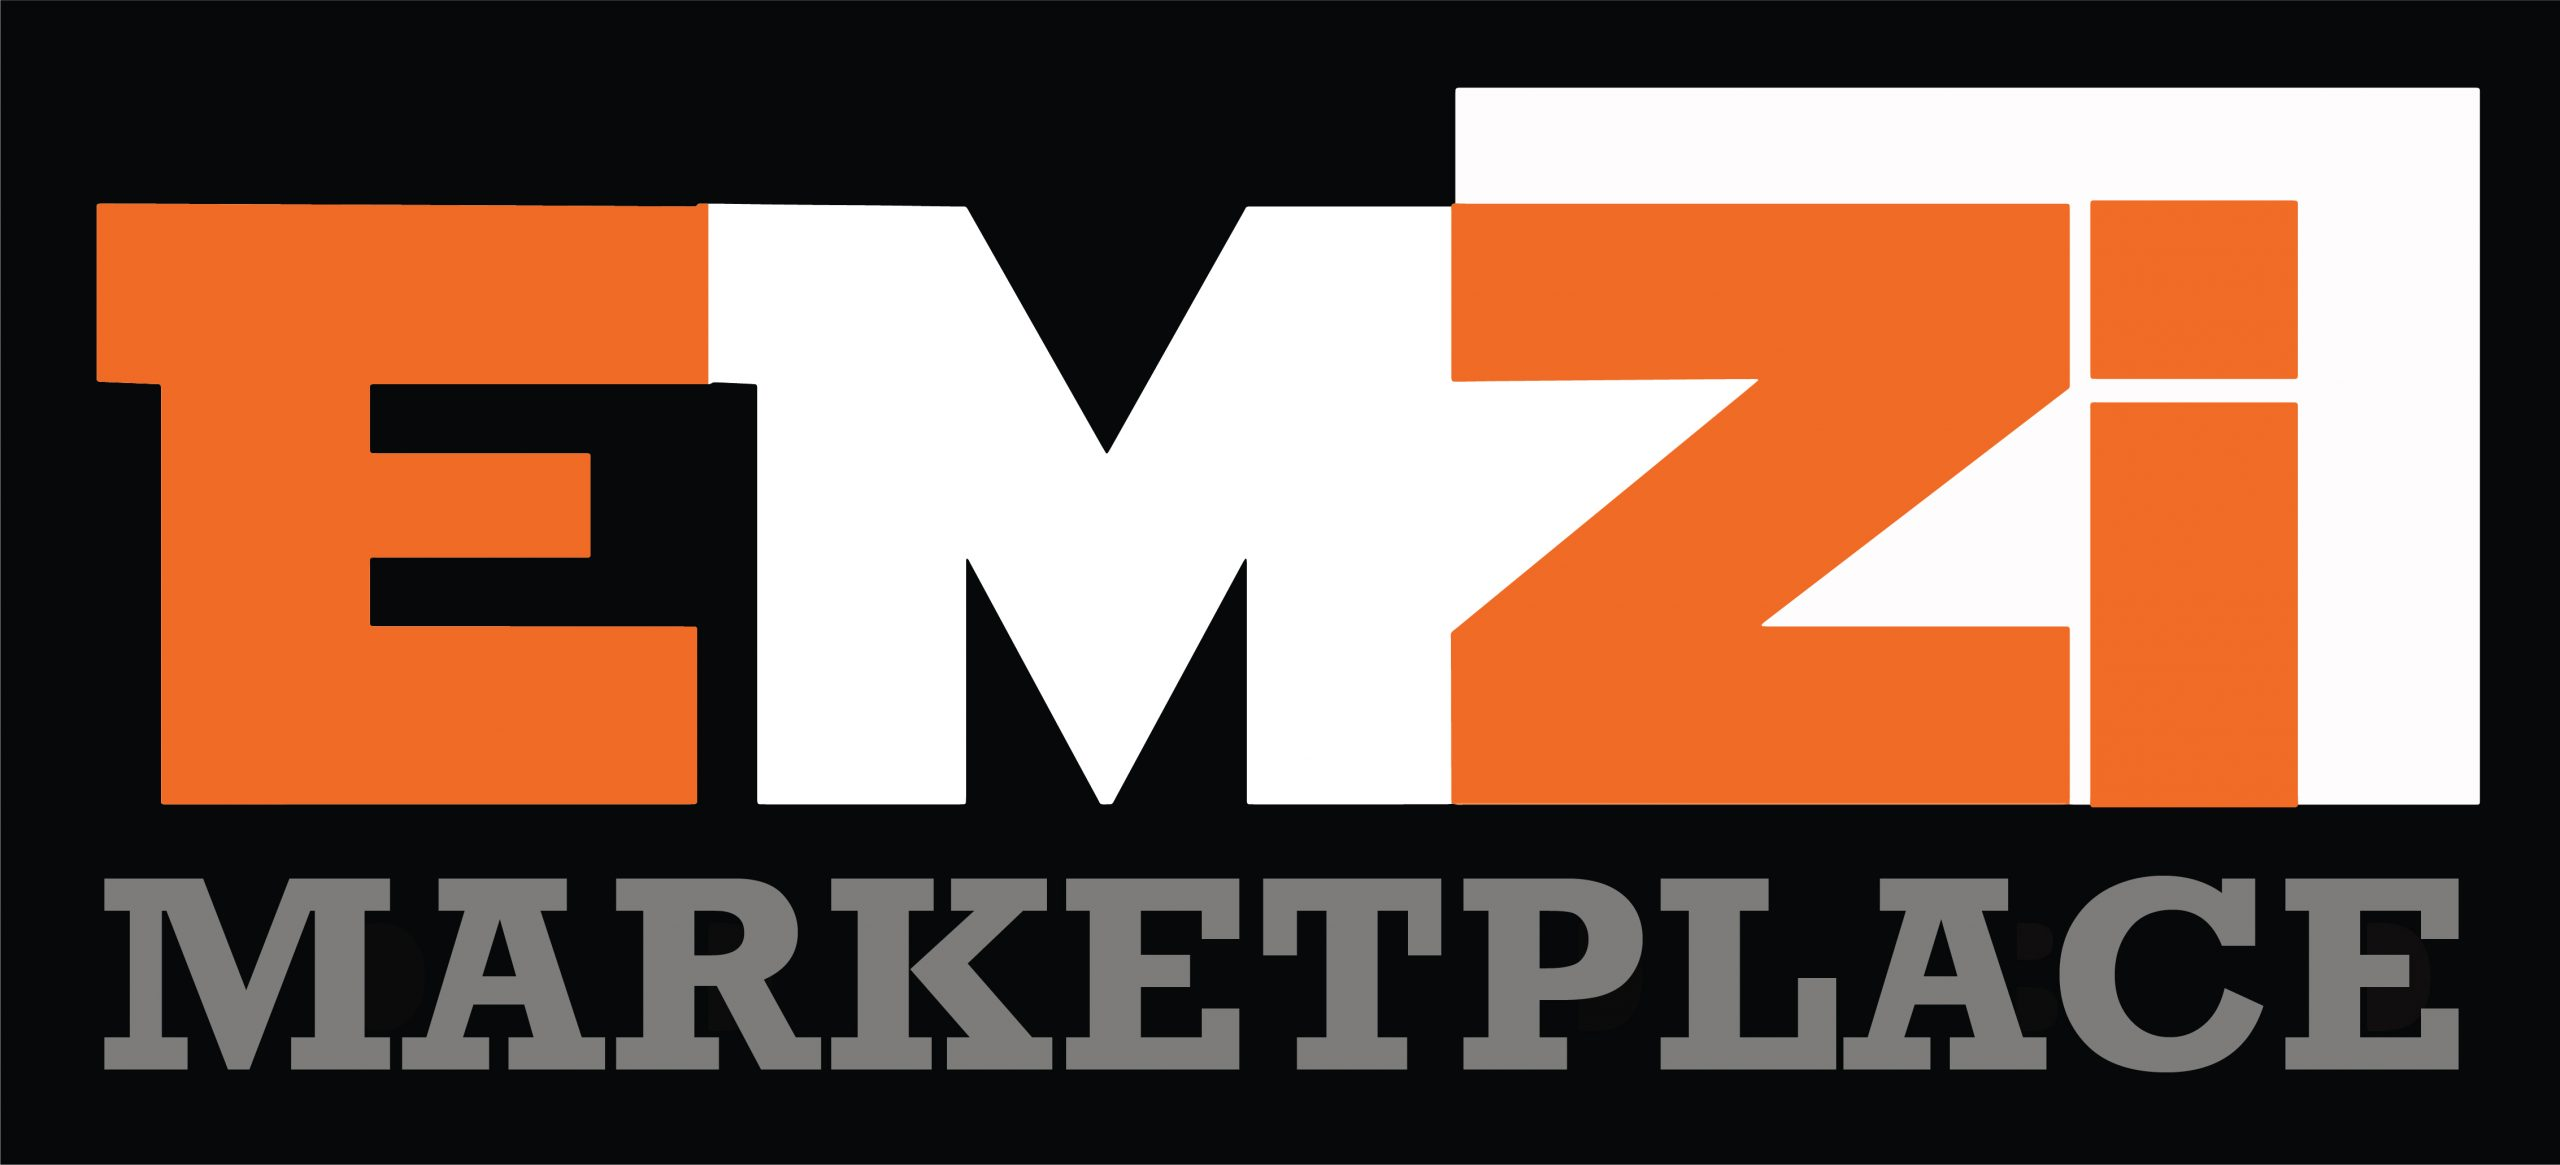 Welcome to Emzi Marketplace